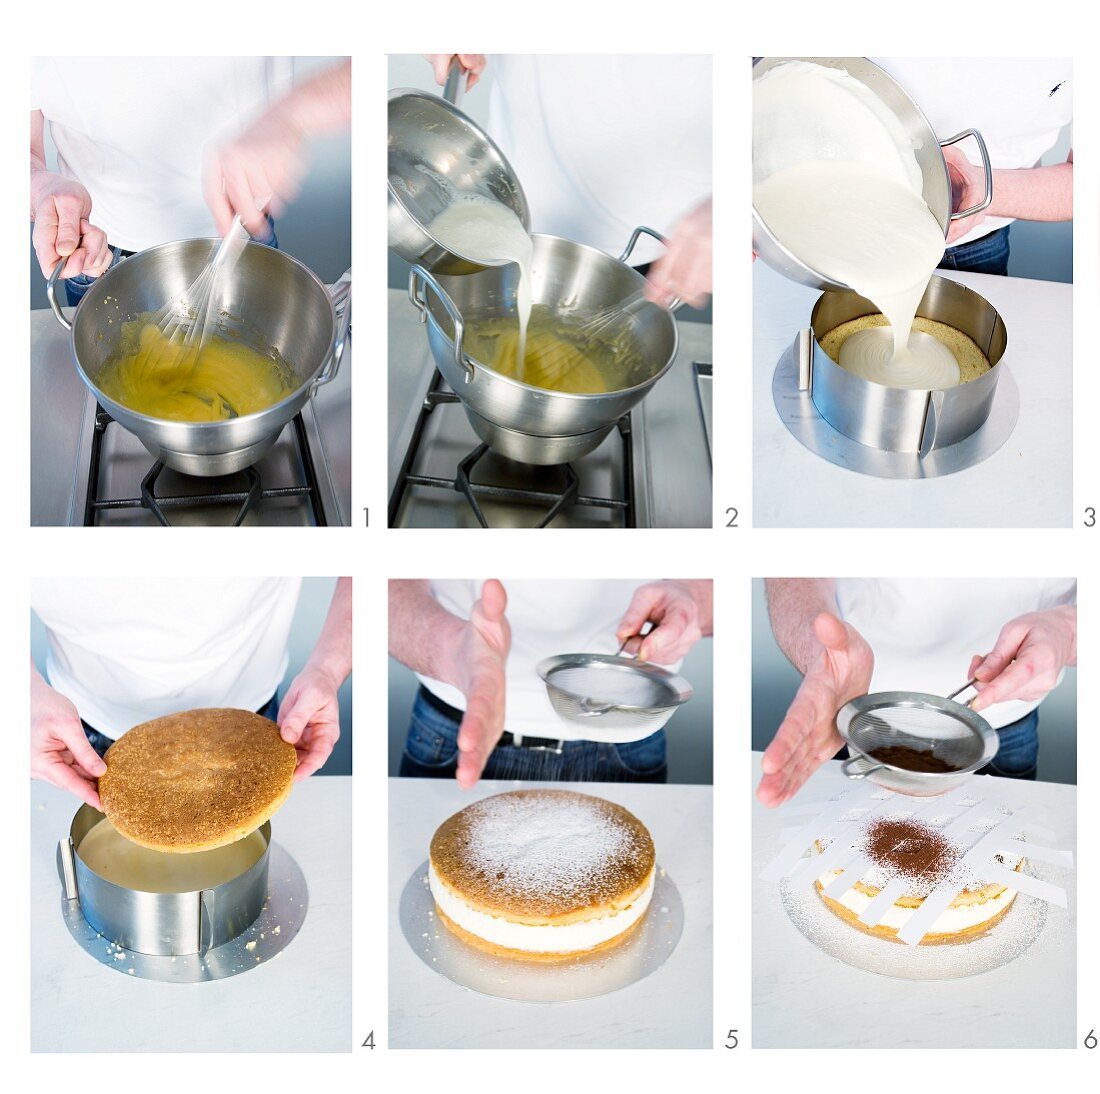 A creamy cheese cake being made